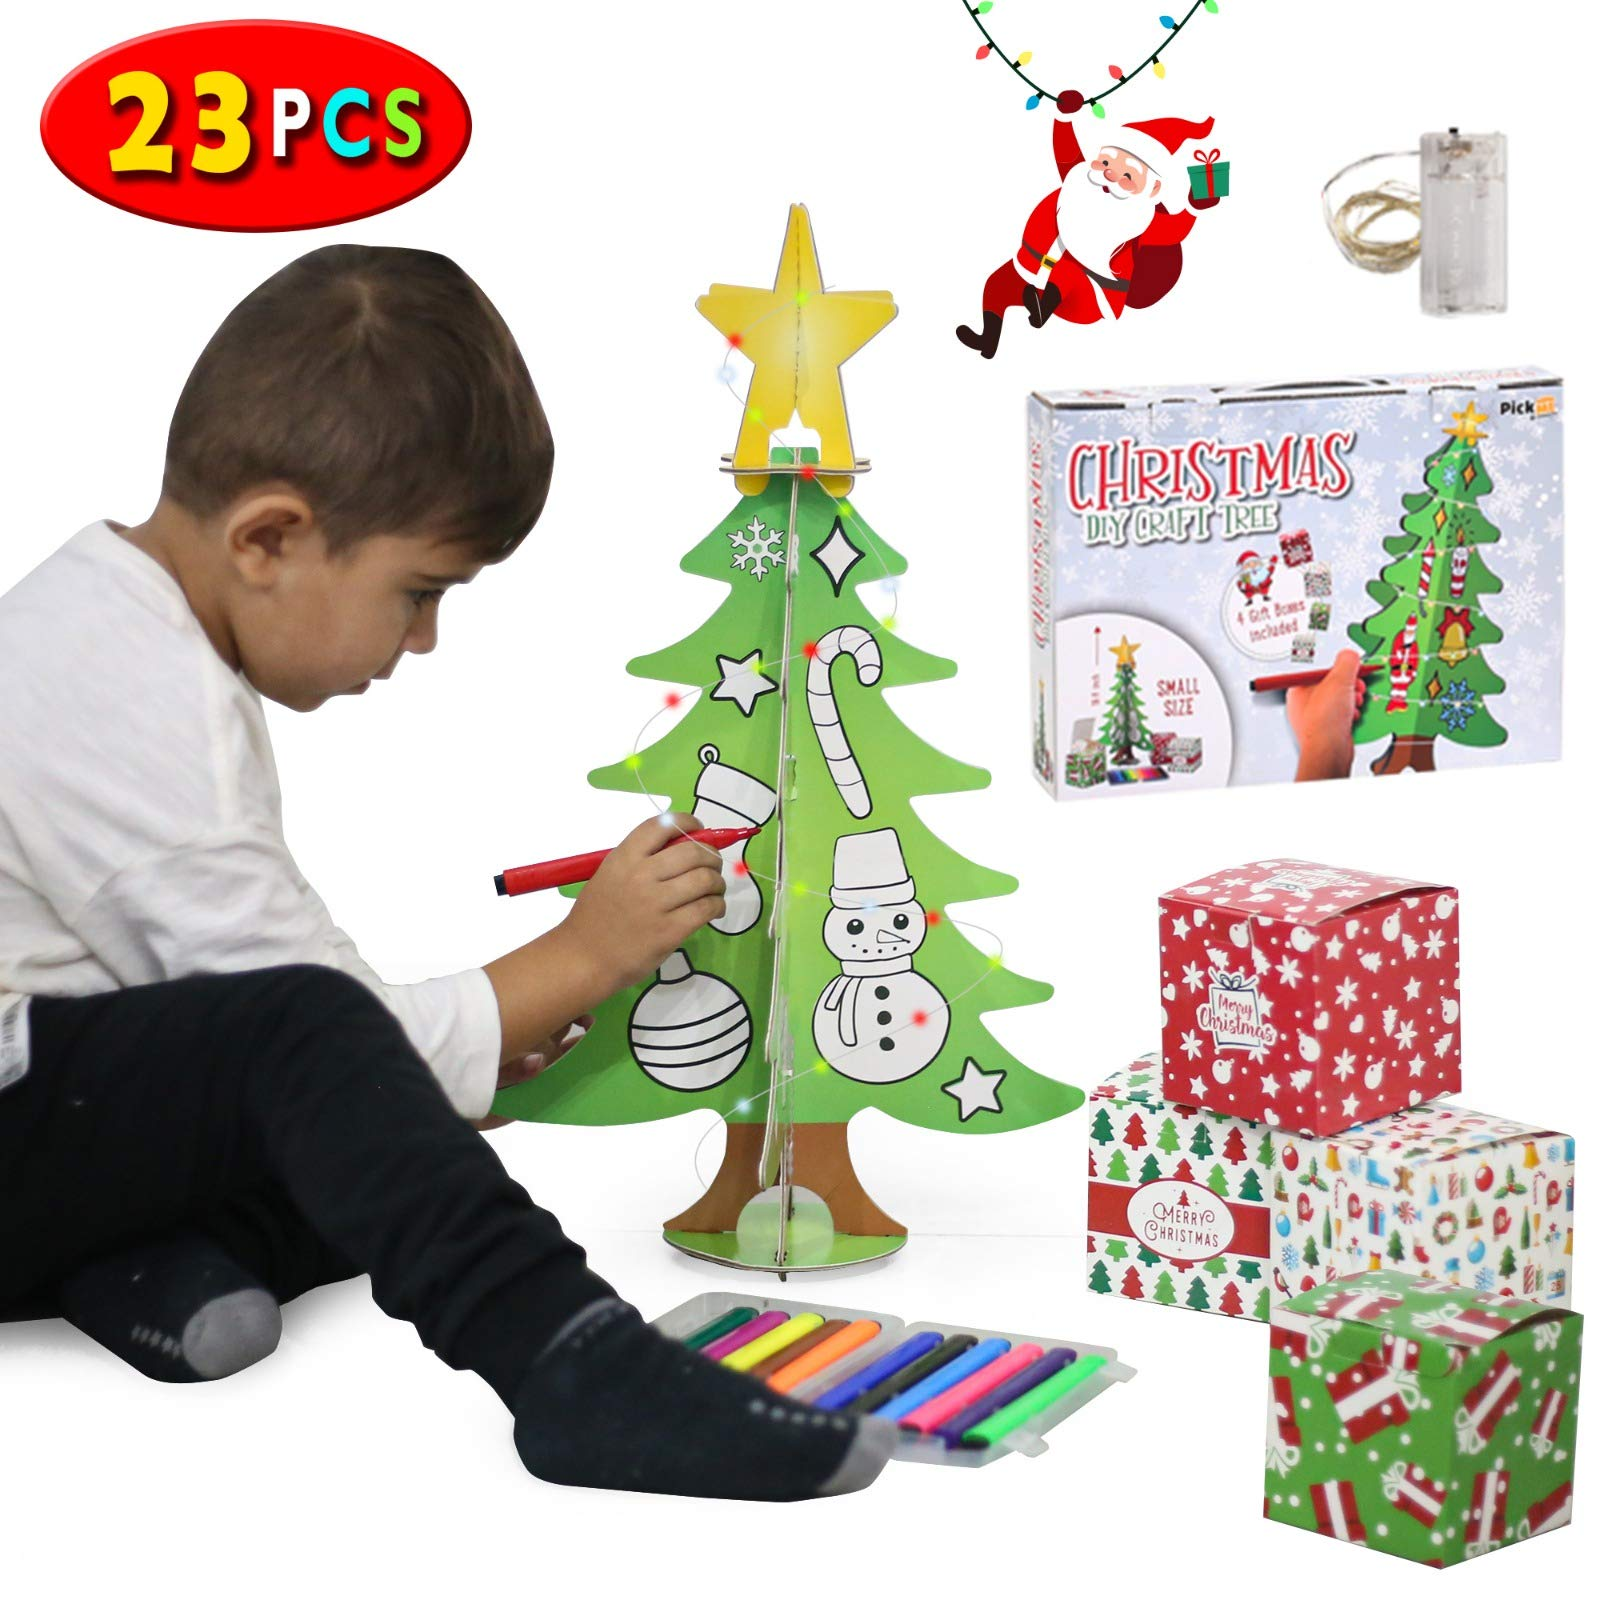 Christmas tree craft set